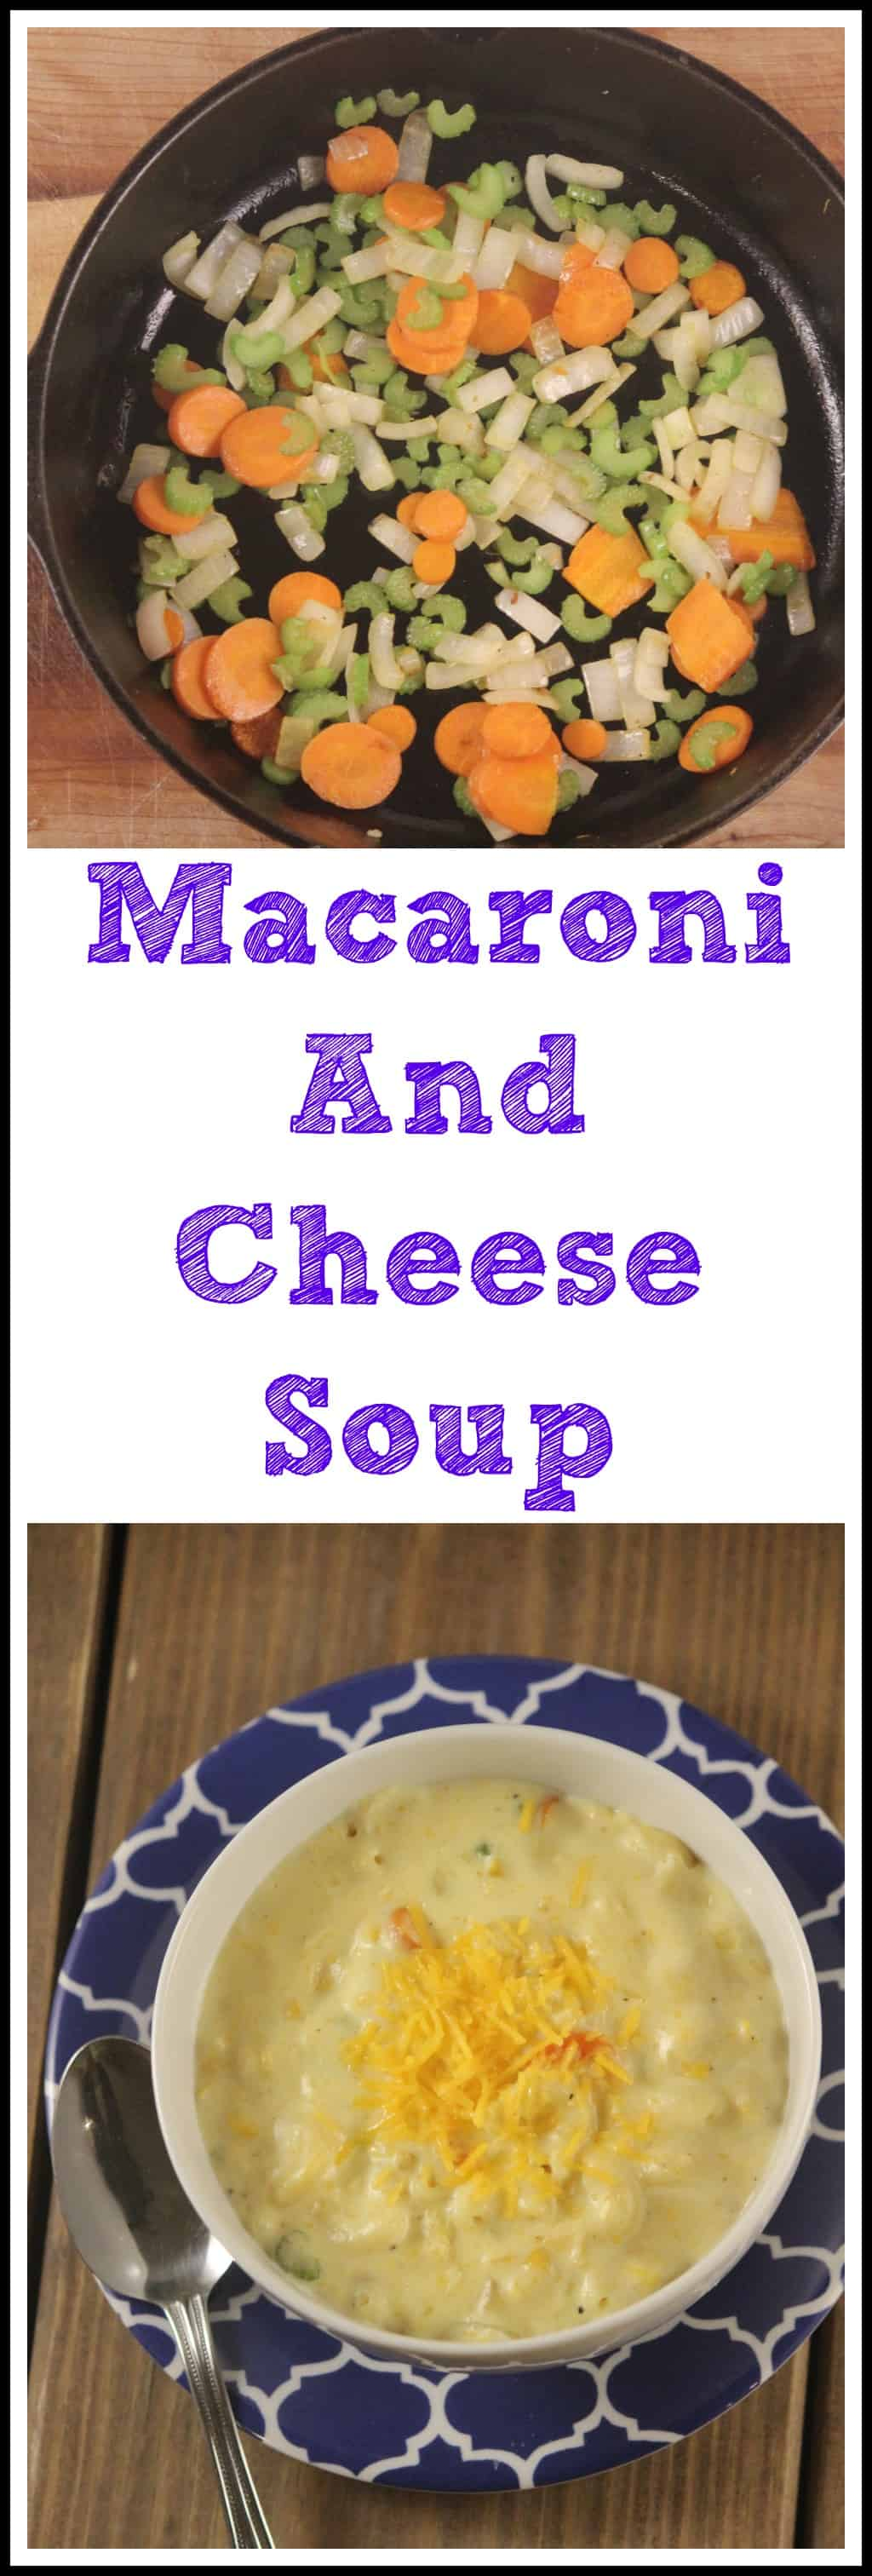 Pinterest image on how to make macaroni and cheese soup